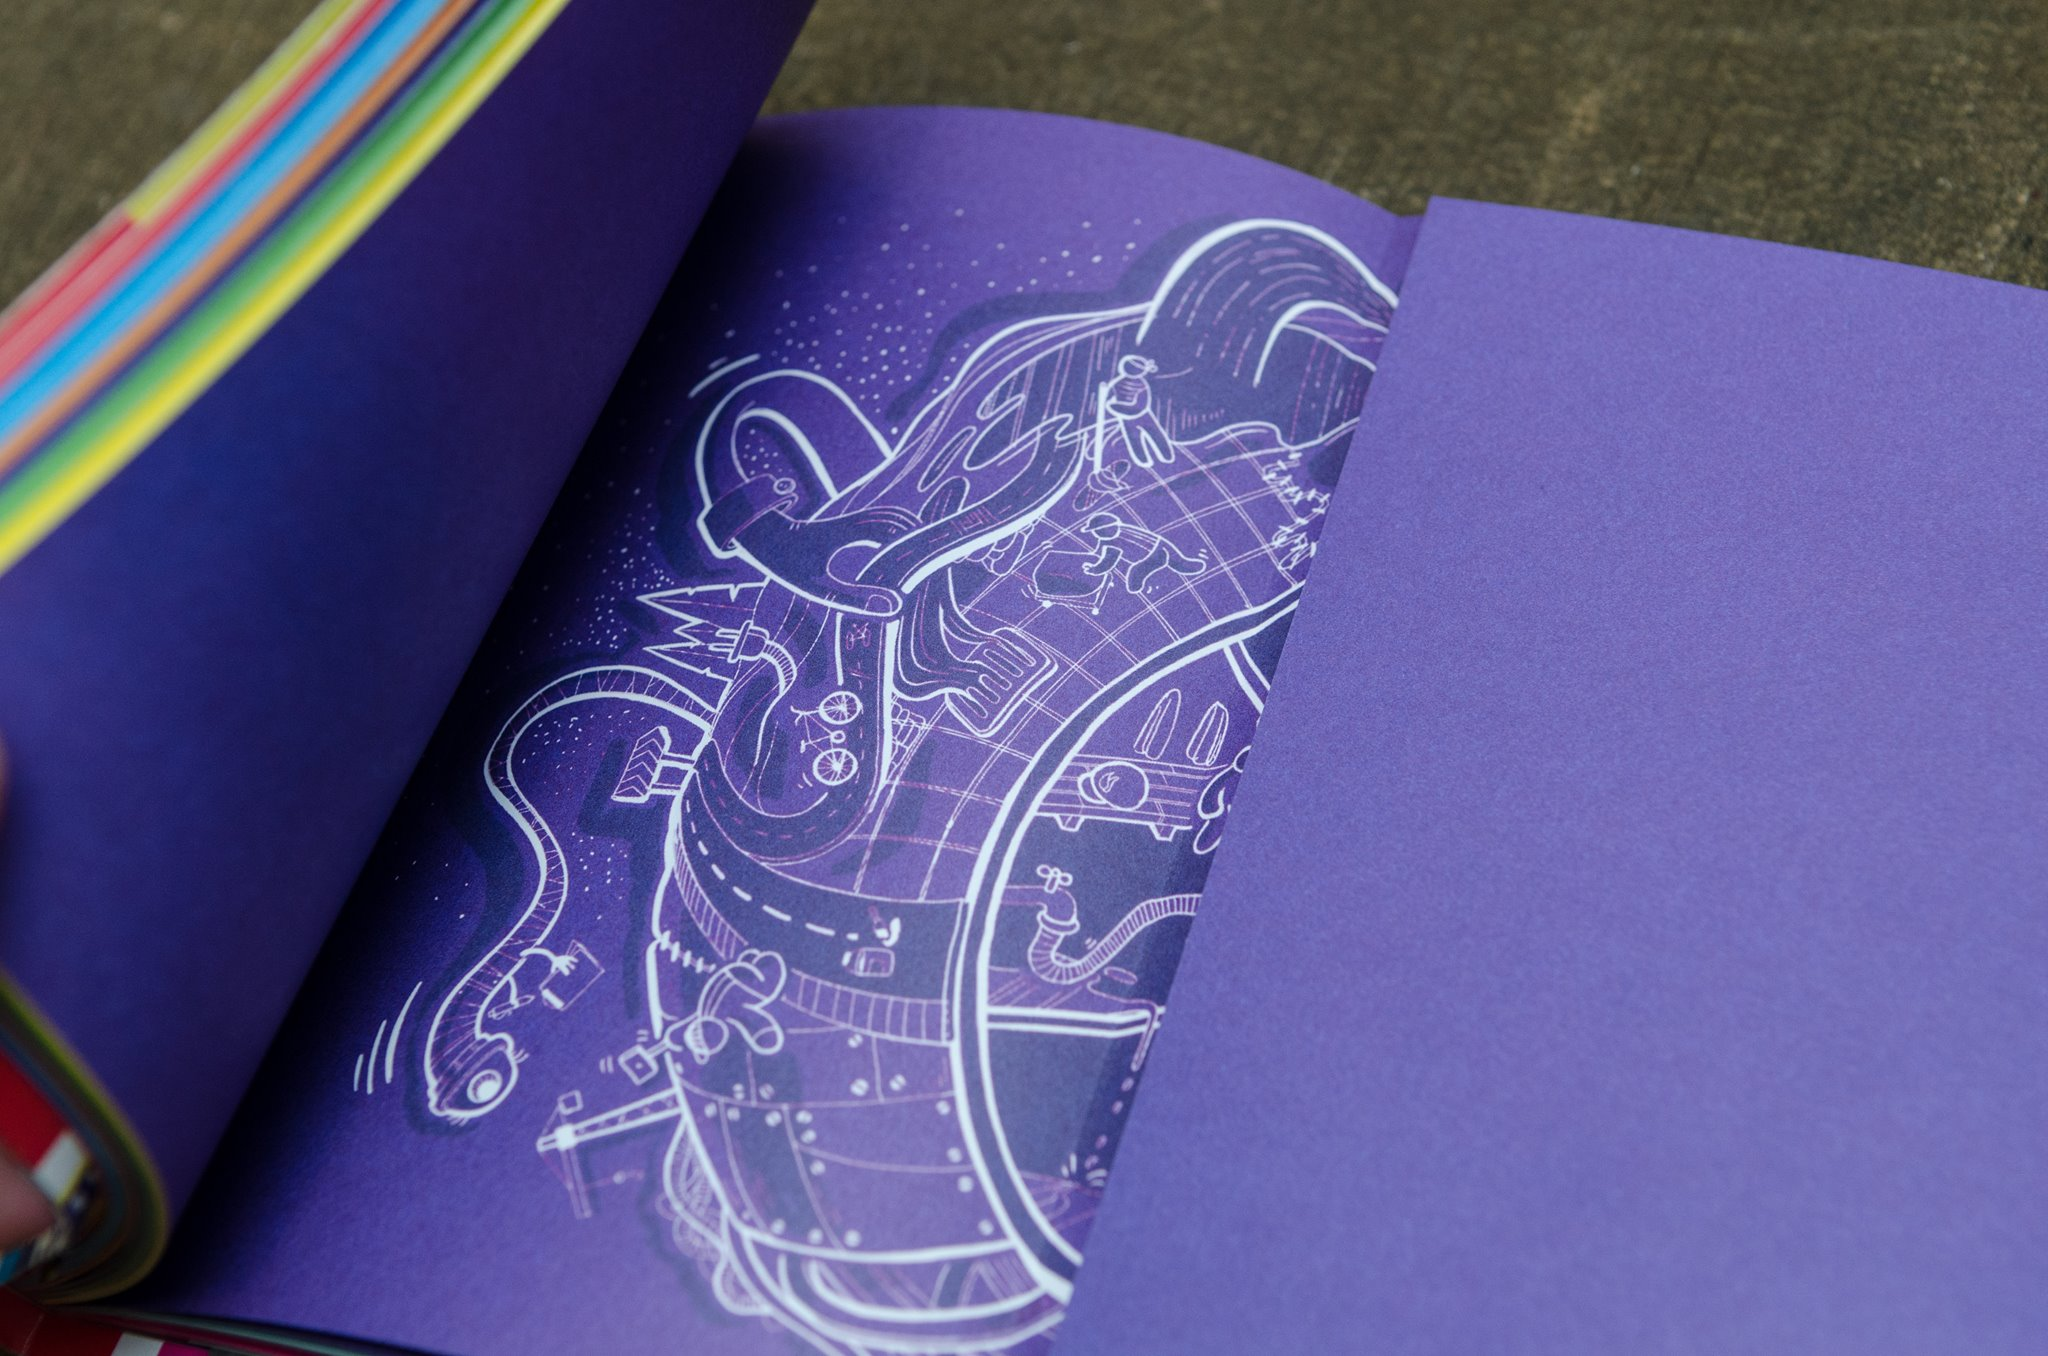 Funk Citizens Constitution for school children, illustration done by raluca mitarca on dark purple backgroun